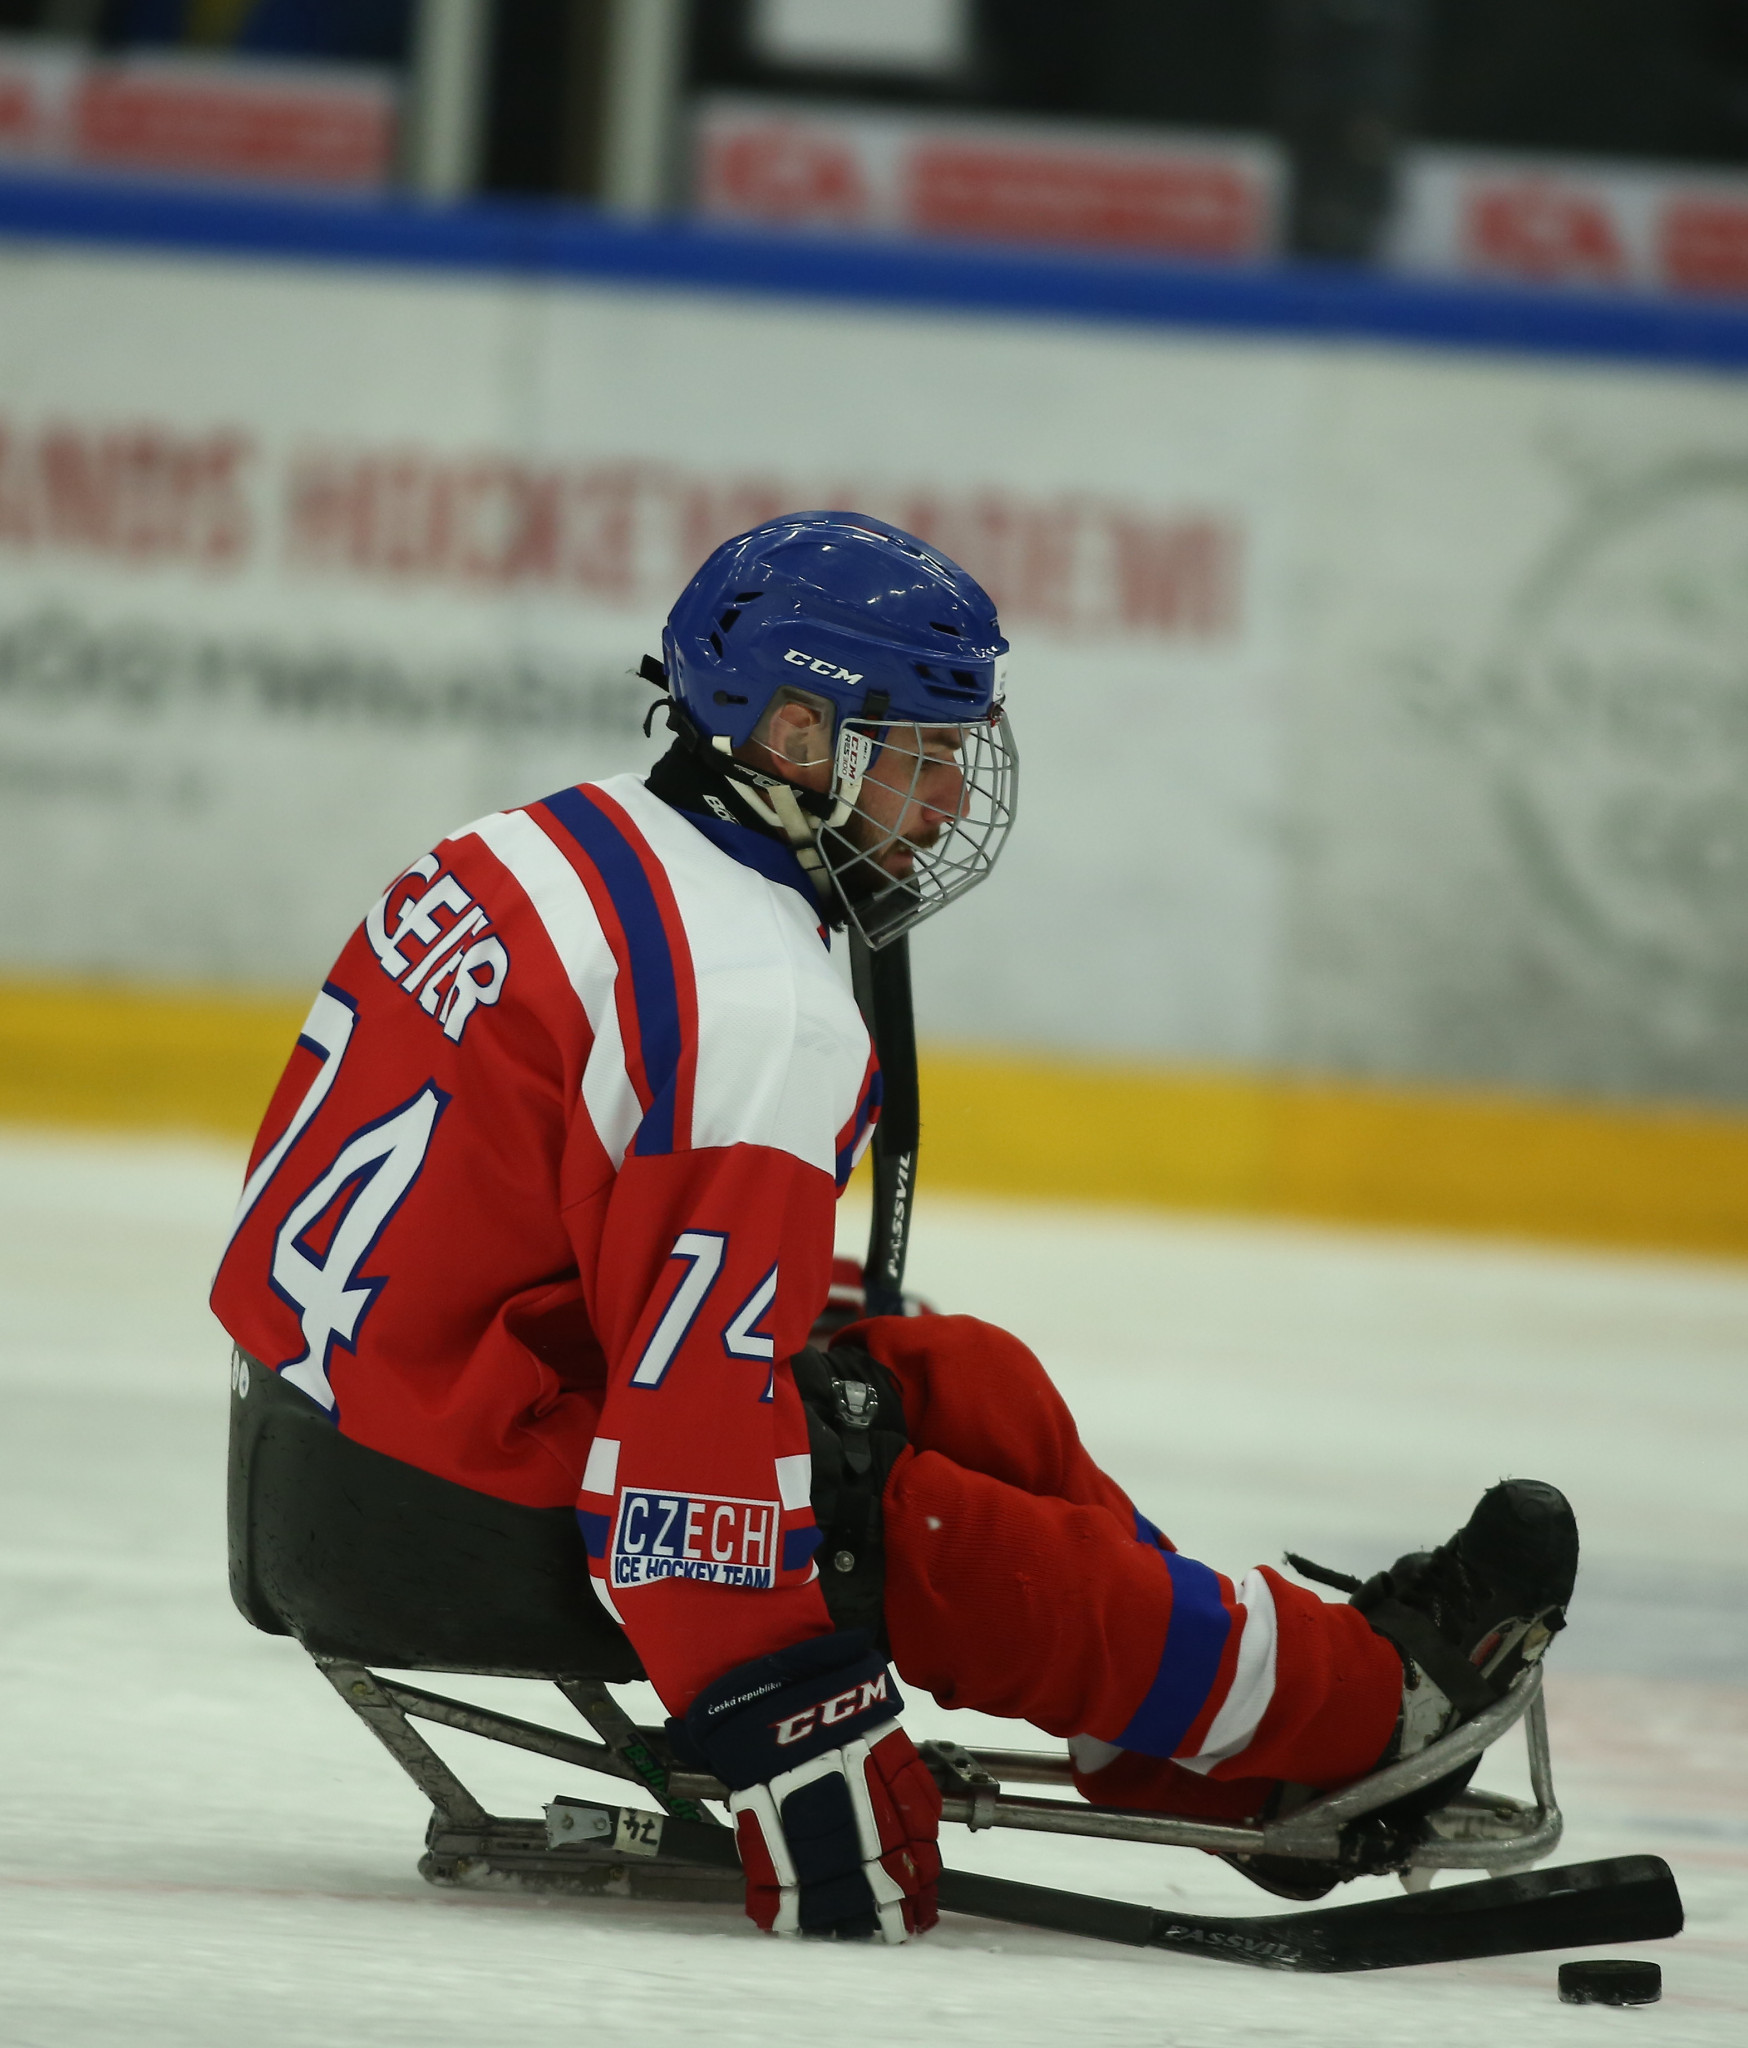 Michal Geier recorded a hat-trick as the Czech Republic ran out 5-1 winners against Germany ©IPC